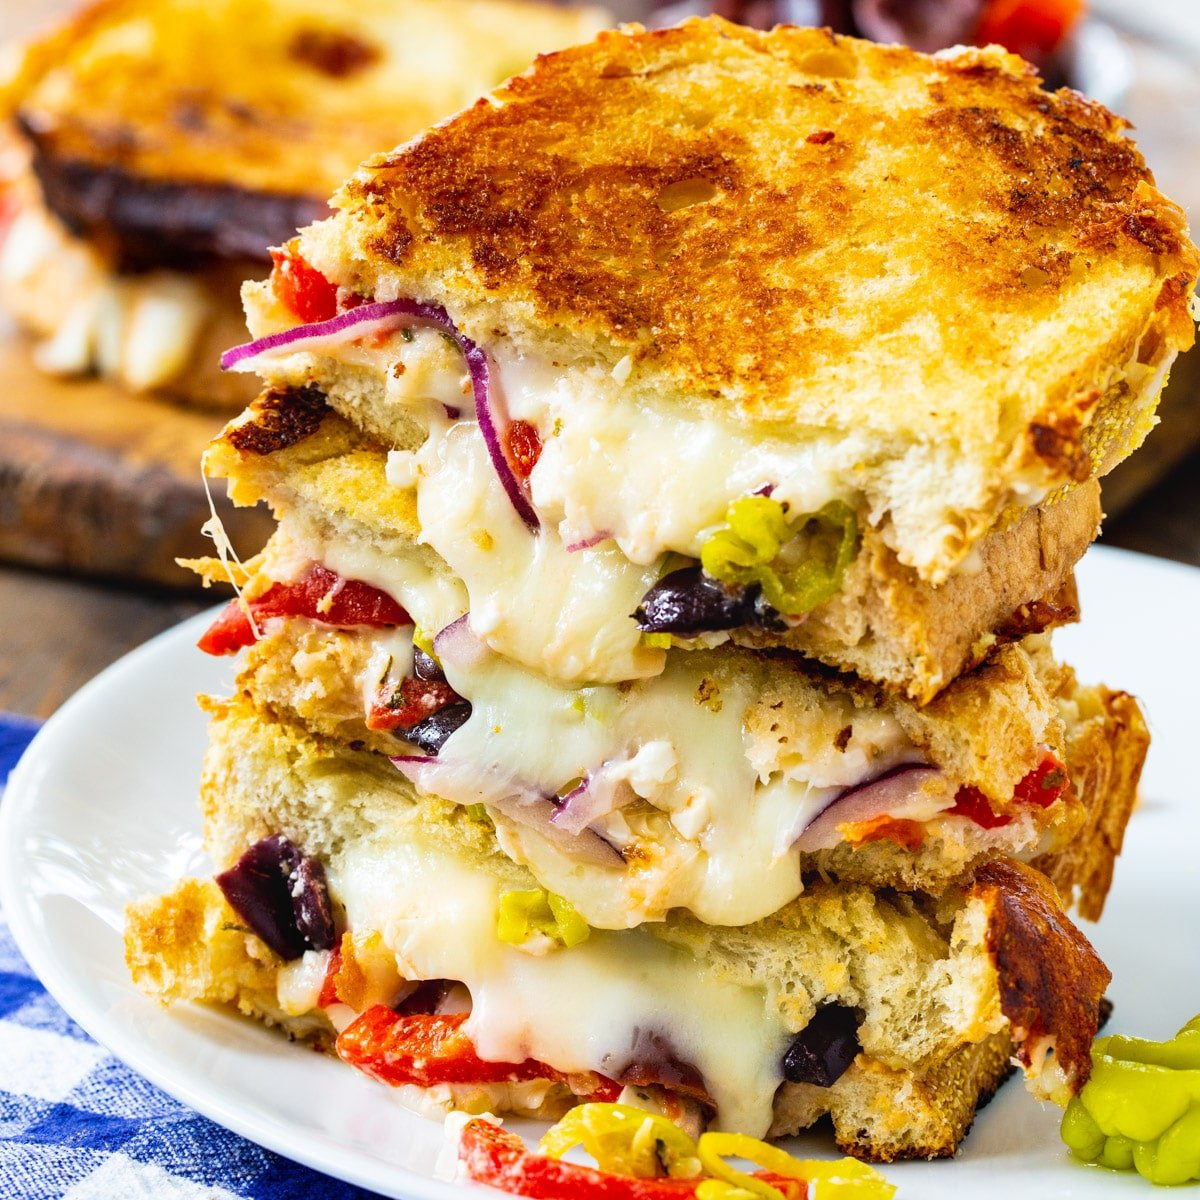 Greek Grilled Cheese halves stacked on a plate.